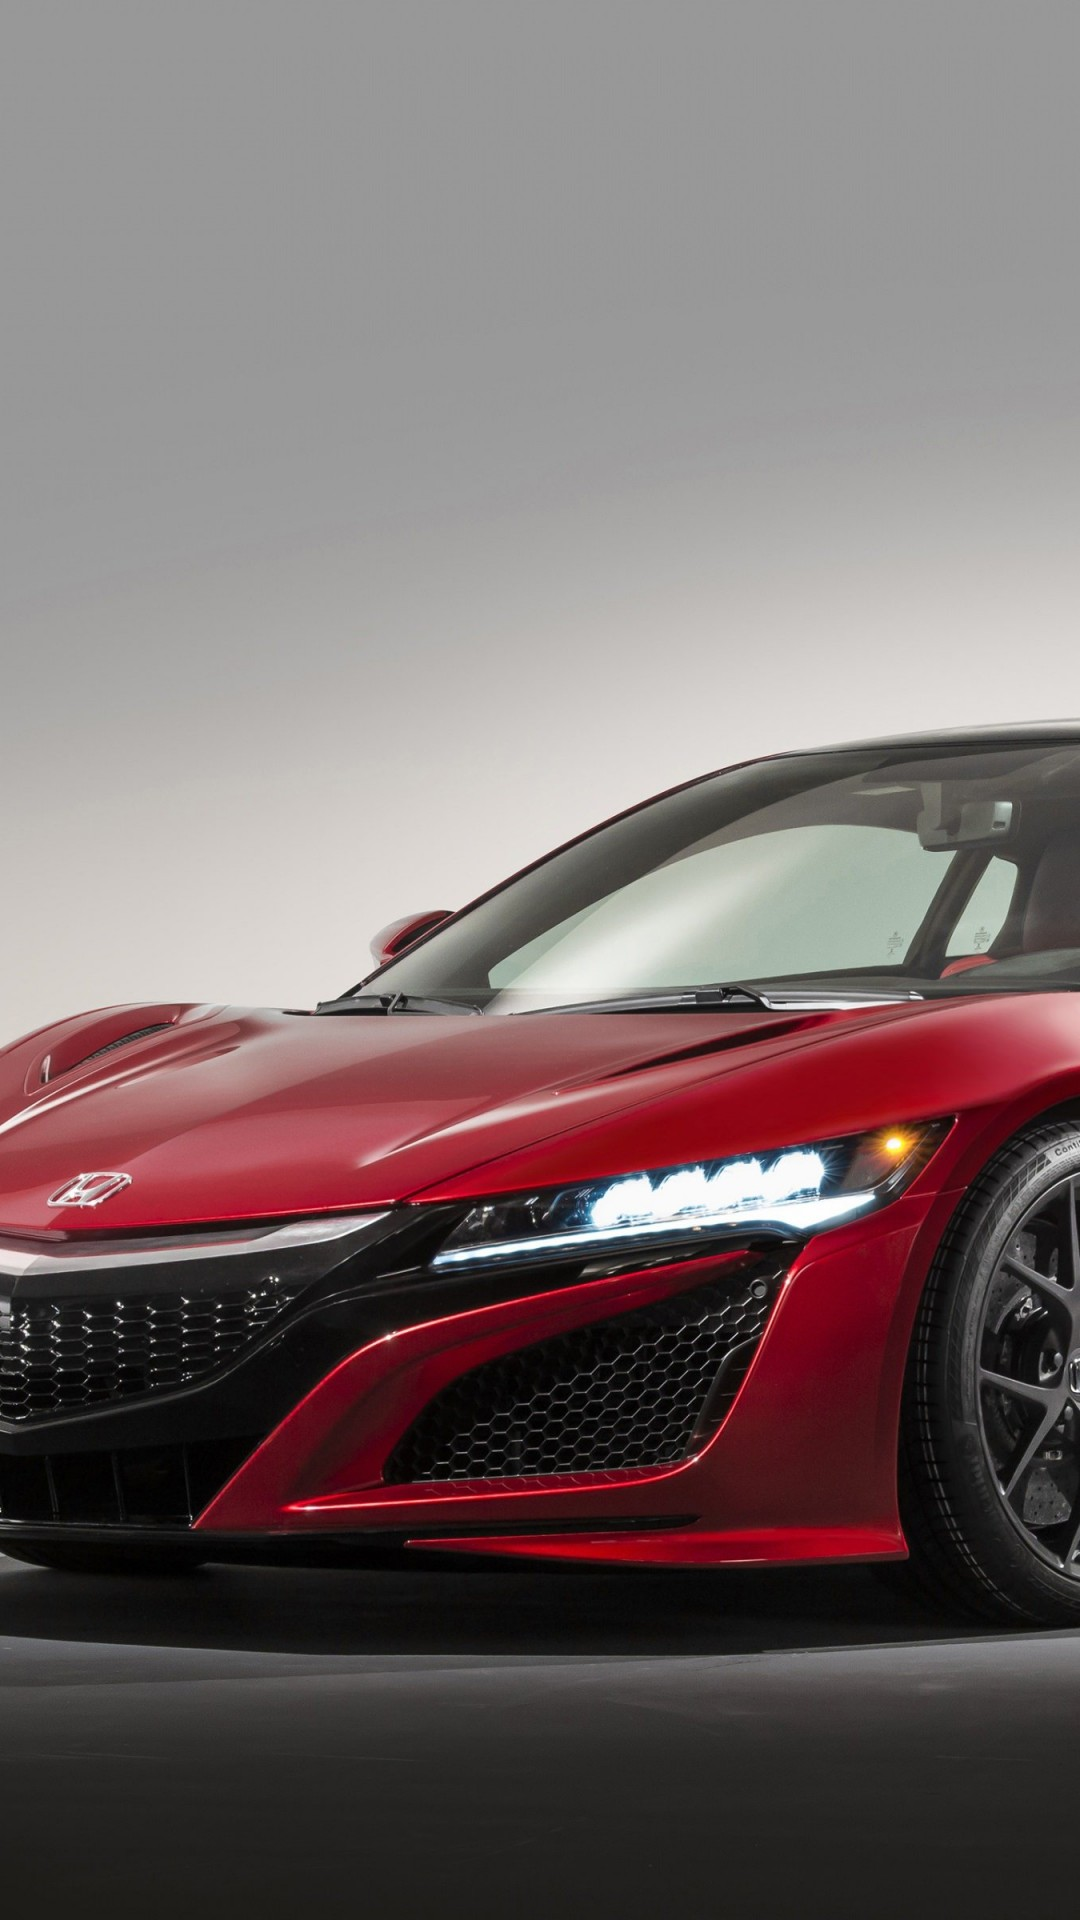 Honda NSX 2015 Wallpaper for Google Nexus 5X